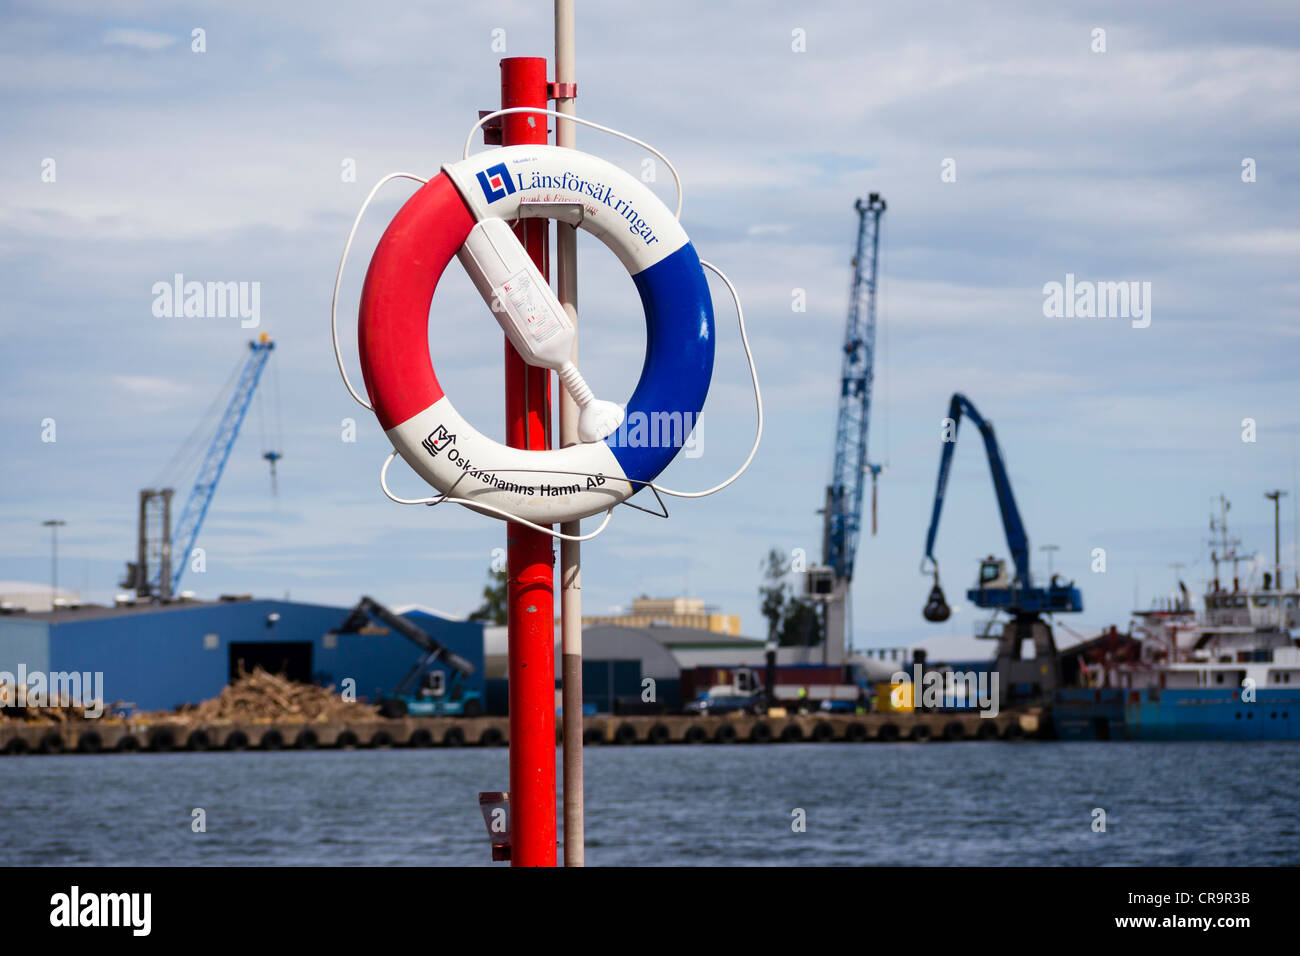 A lifebelt in the harbour of Oskarshamn. - Stock Image